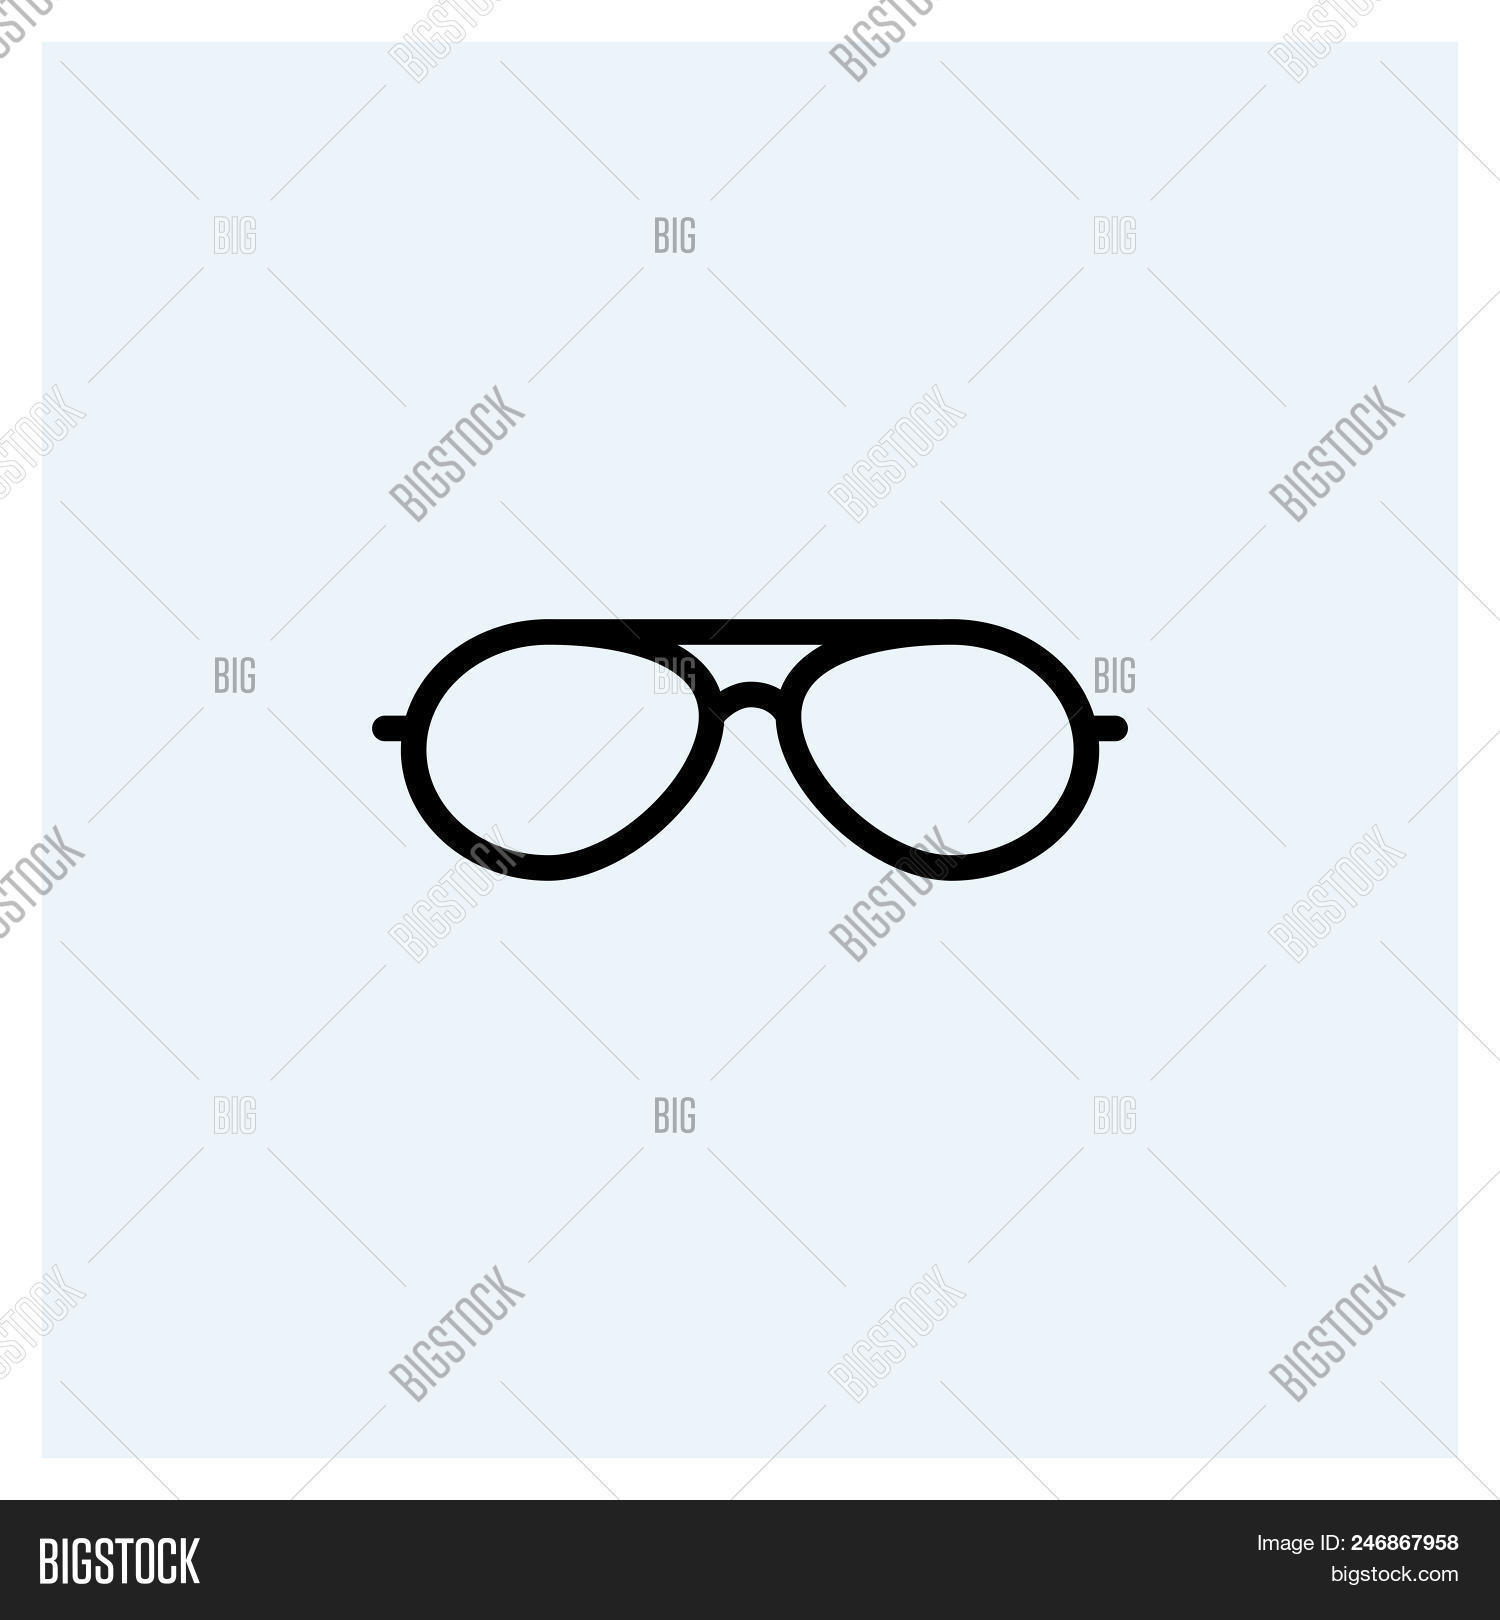 Sunglasses icon vector icon on white background. Sunglasses icon modern icon for graphic and web design. Sunglasses icon icon sign for logo, website, app, ui. Sunglasses icon flat vector icon illustration, EPS10